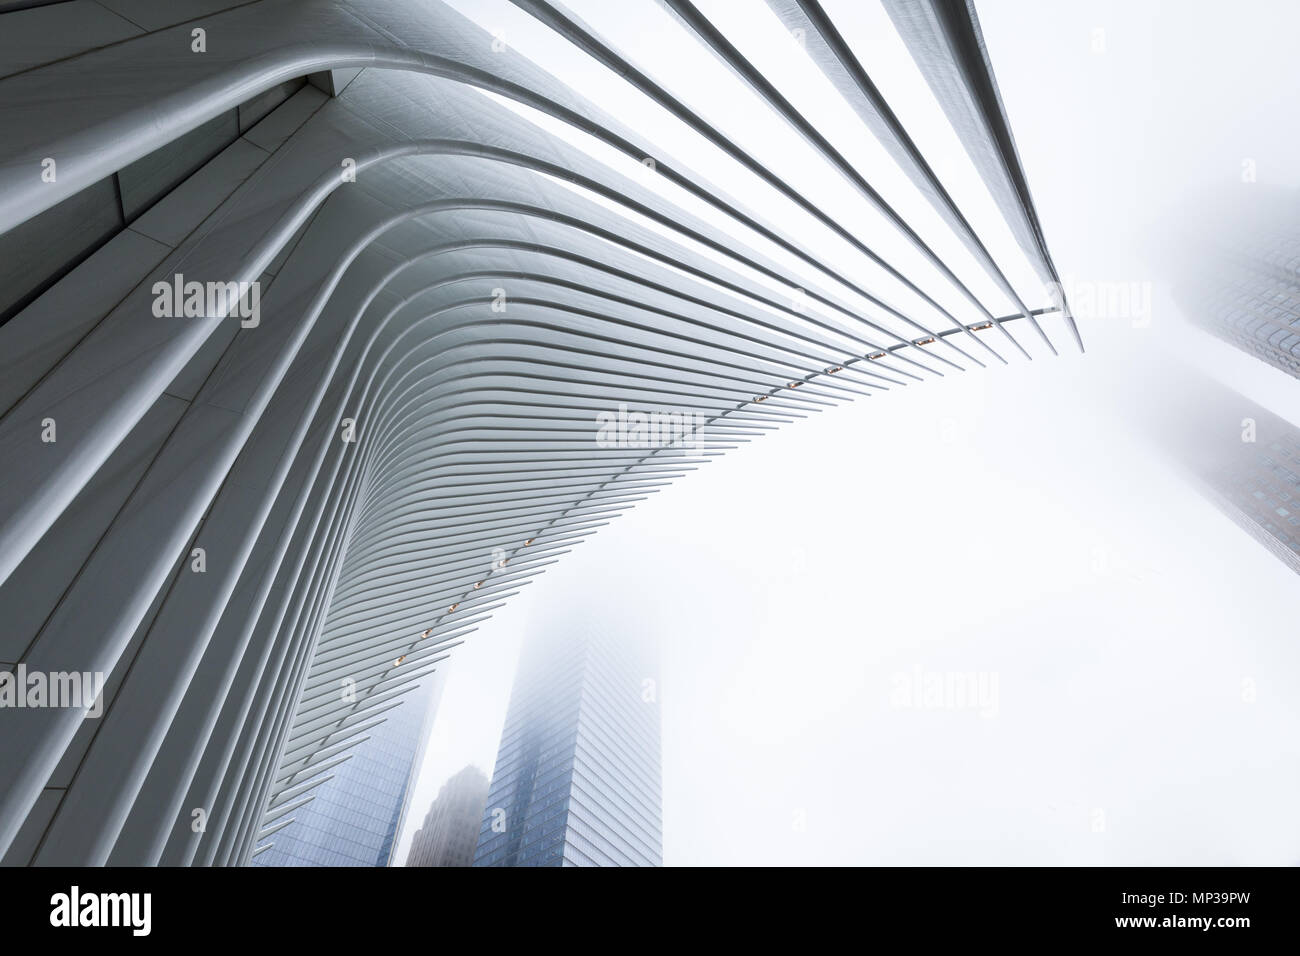 Die Oculus Gebäude in Nebel, Lower Manhattan, New York City, USA. Stockbild